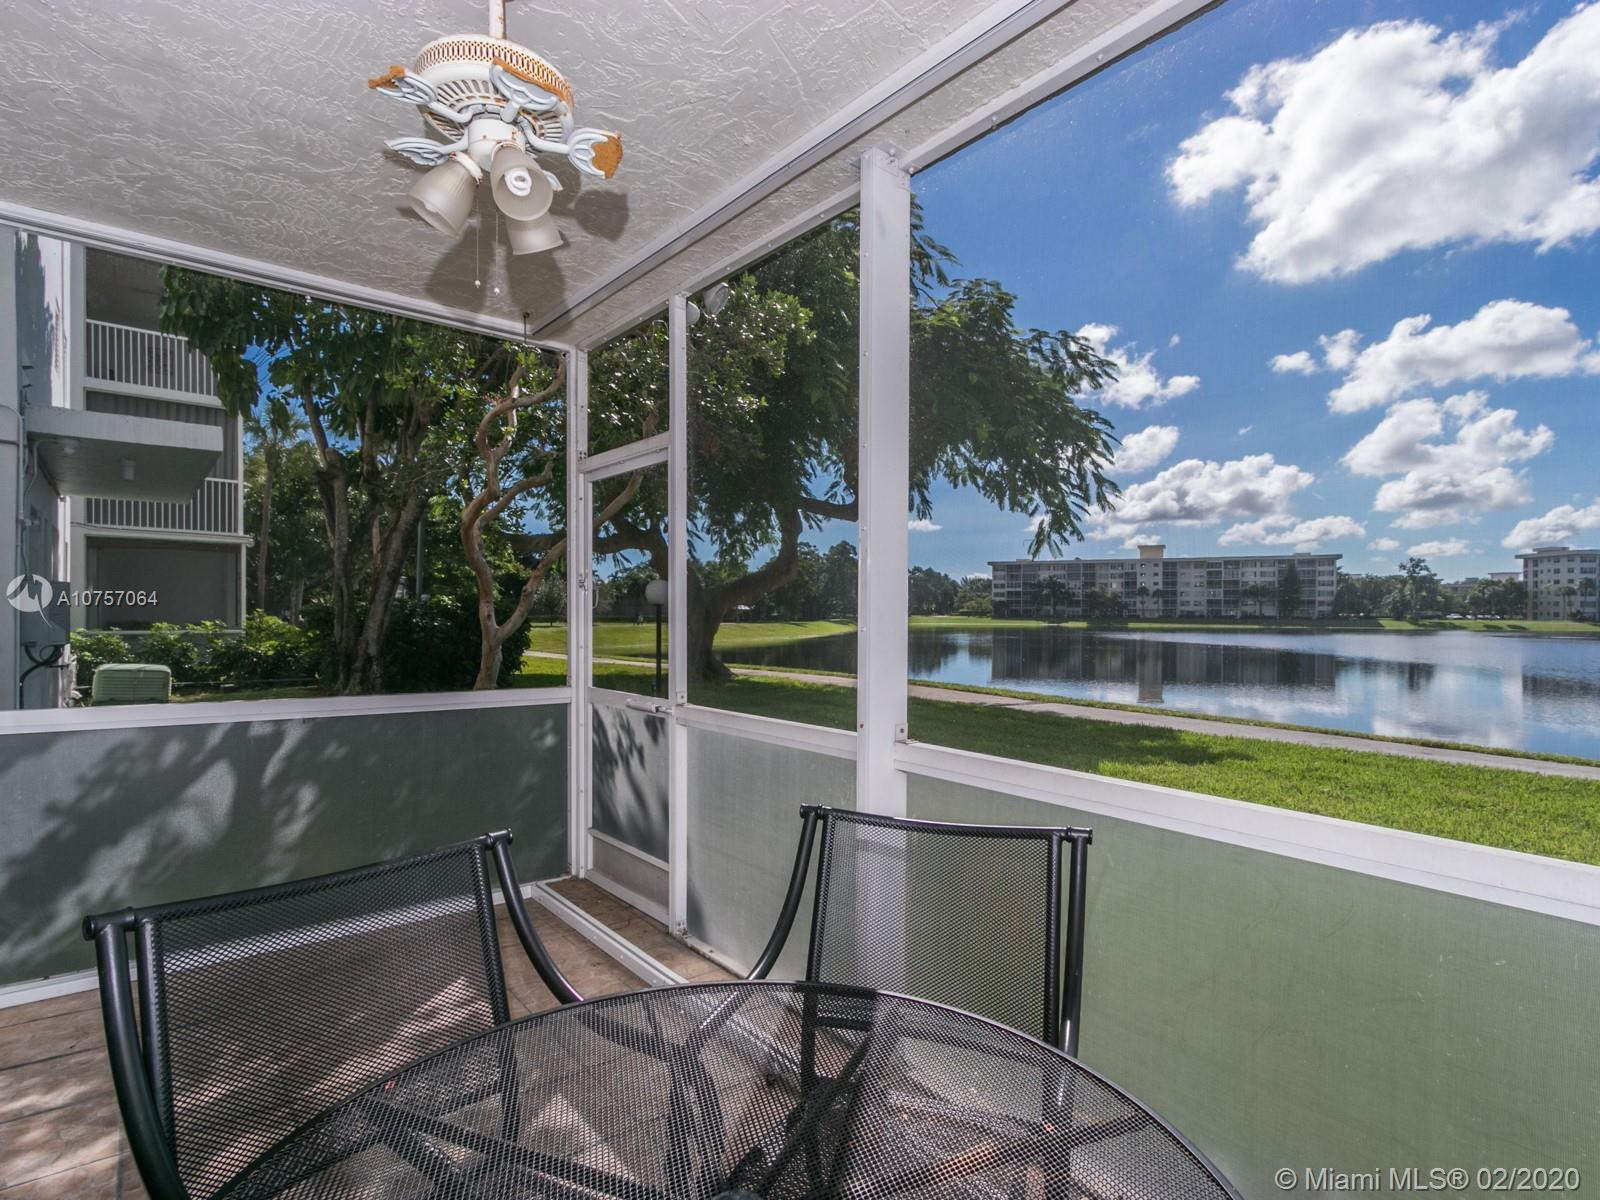 ALL AGES! Beautiful 1st floor corner unit condo with screened in patio and lake view! The unit has accordion shutters to close off the balcony. The kitchen has updated appliances and a kitchen pass through. New AC and new washer/dryer. Both bathrooms are completely updated as well. Washer/dryer in unit! Palm Aire is directly across from the Isle Casino, close to shopping, restaurants and more! No minimum down payment required by association! All offers must be accompanied with a full underwritten approval from the lender.